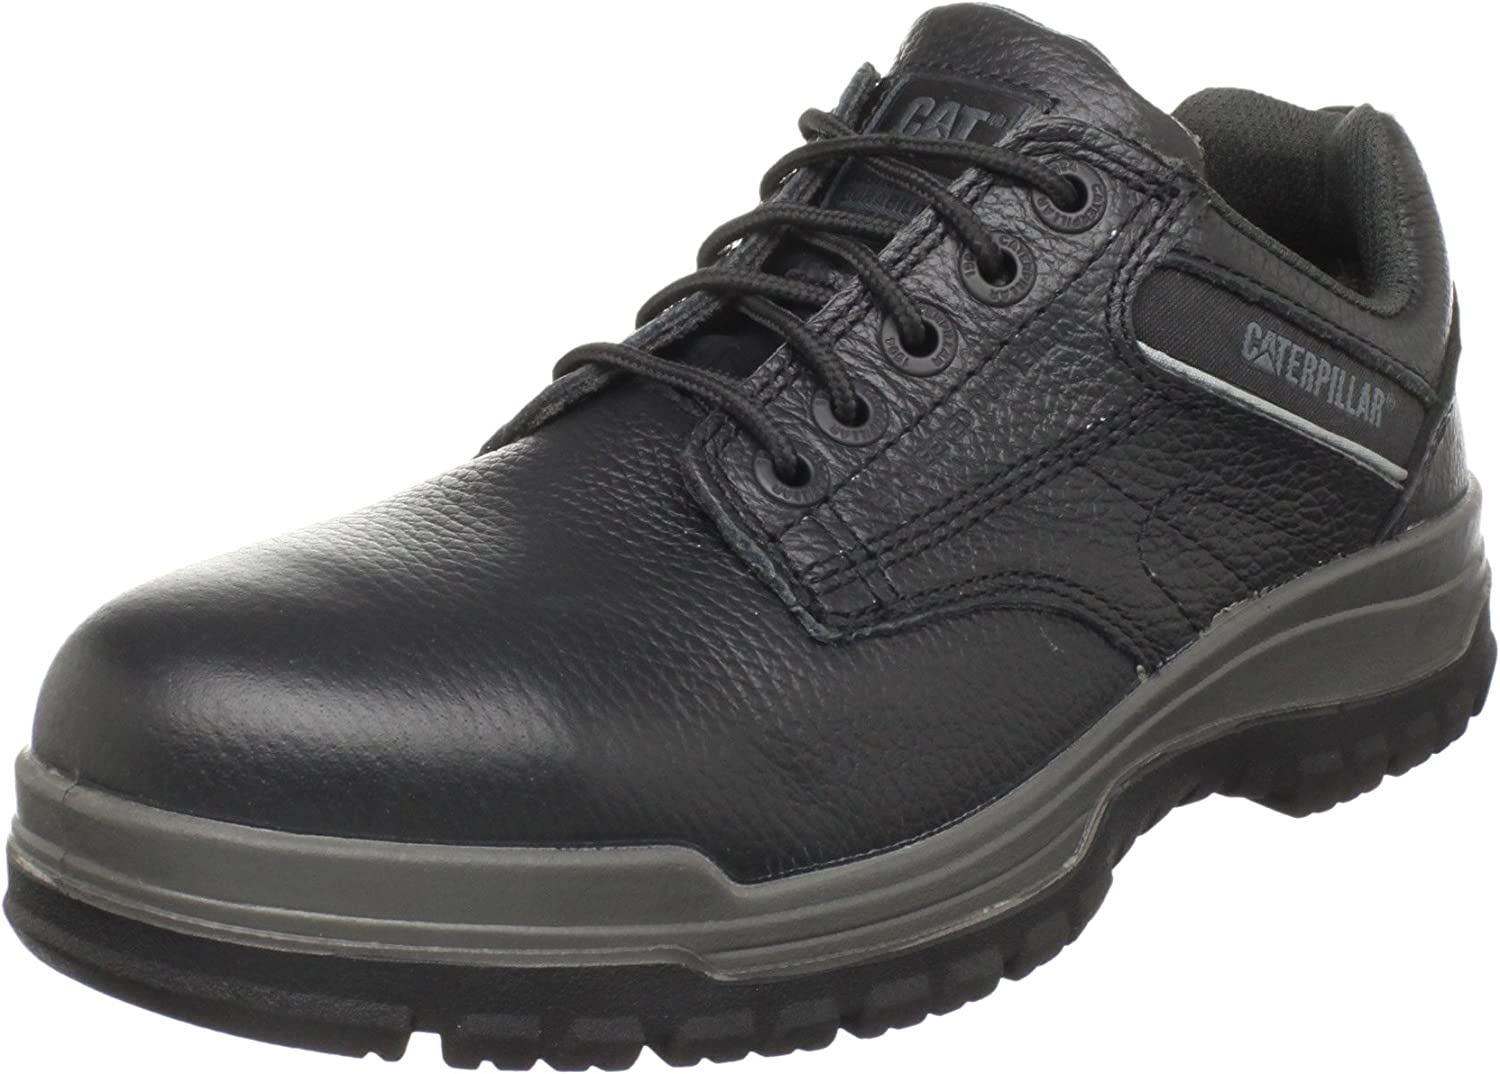 Caterpillar Men's Dimen Steel-Toe Oxford